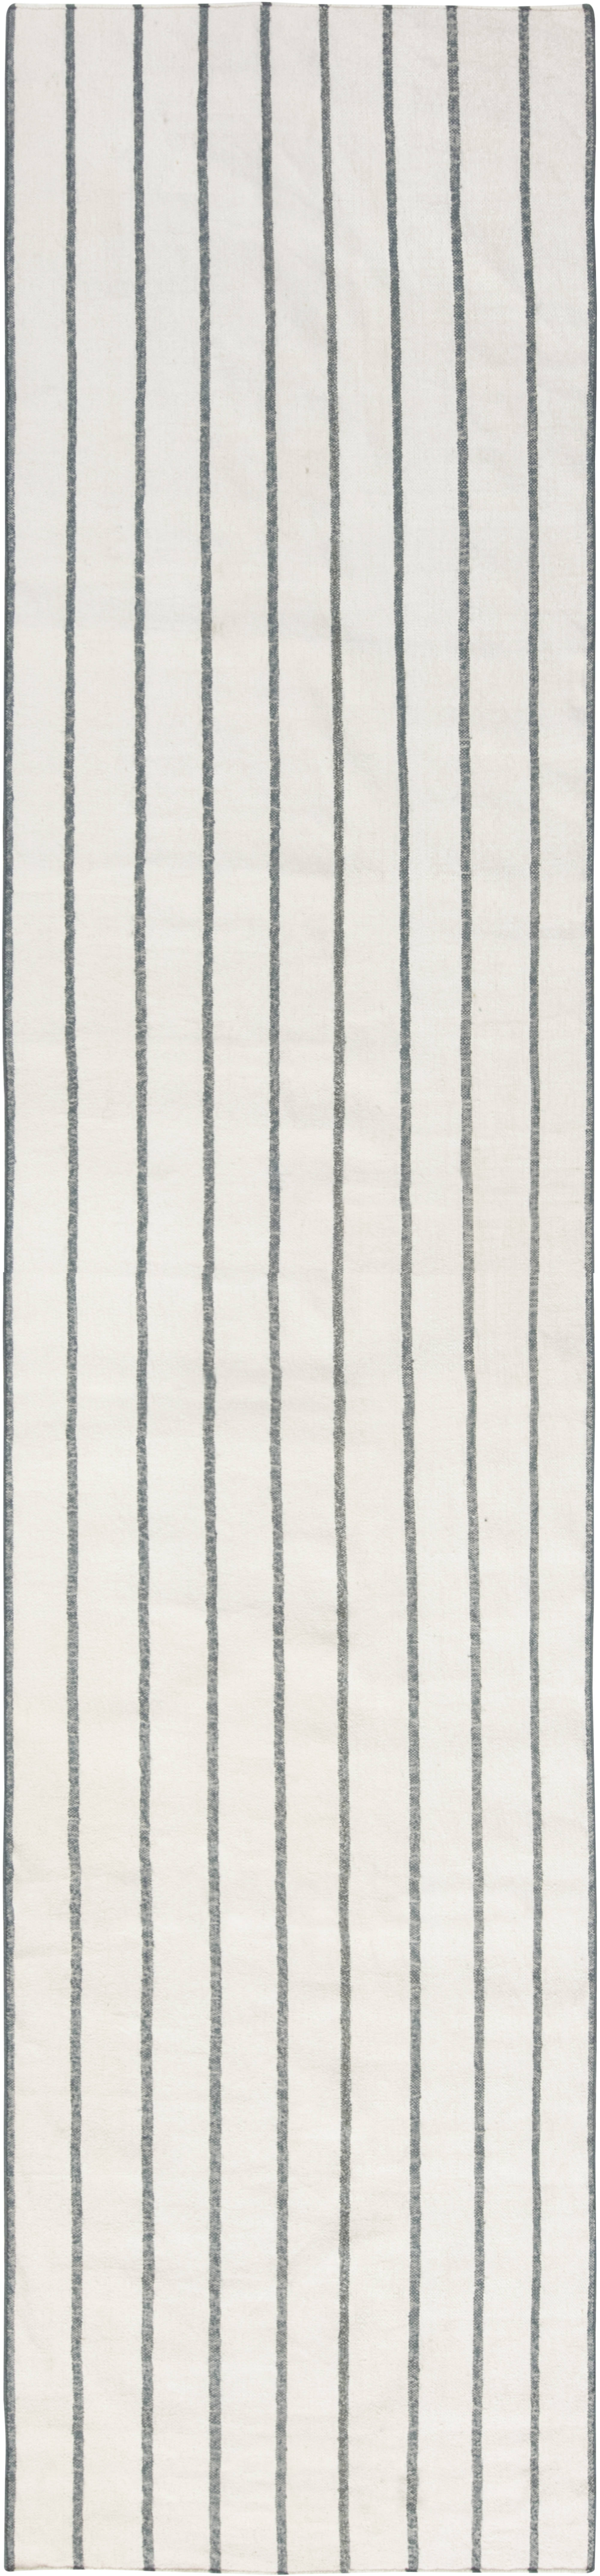 Modern Dhurrie Striped White and Blue Flat-Woven Cotton Runner N11791